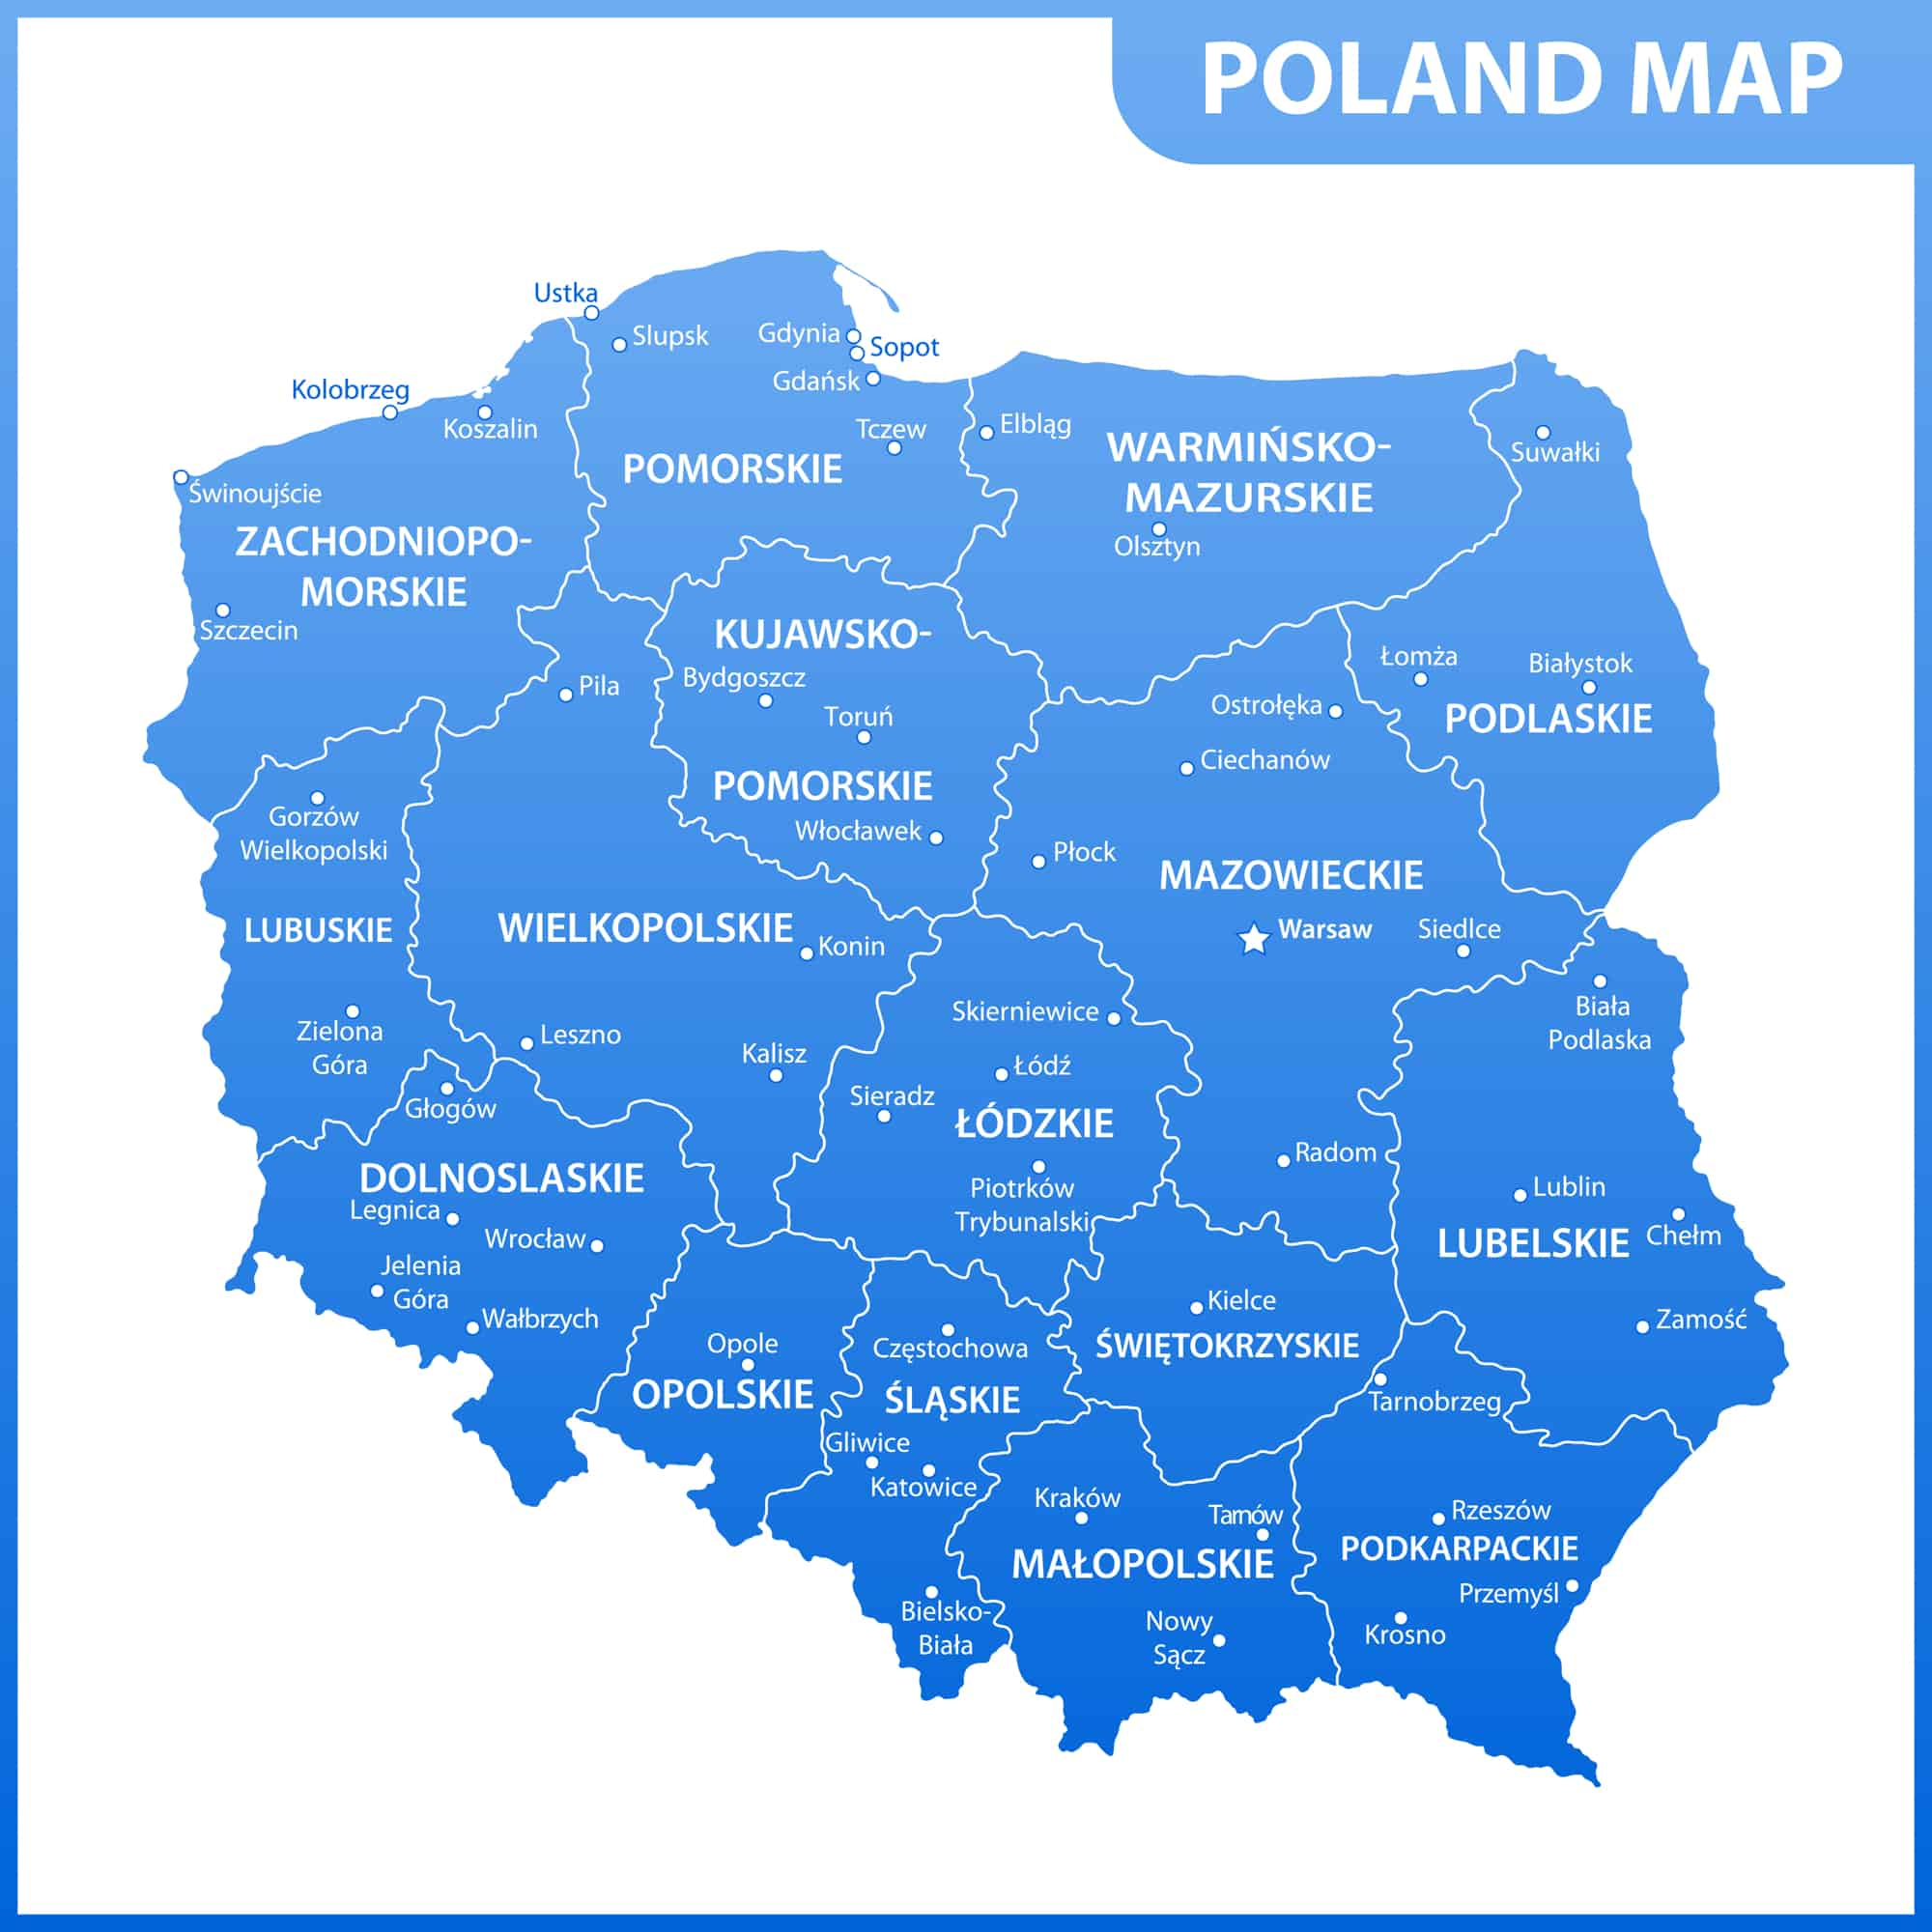 Poland Political Map with Cities and Regions